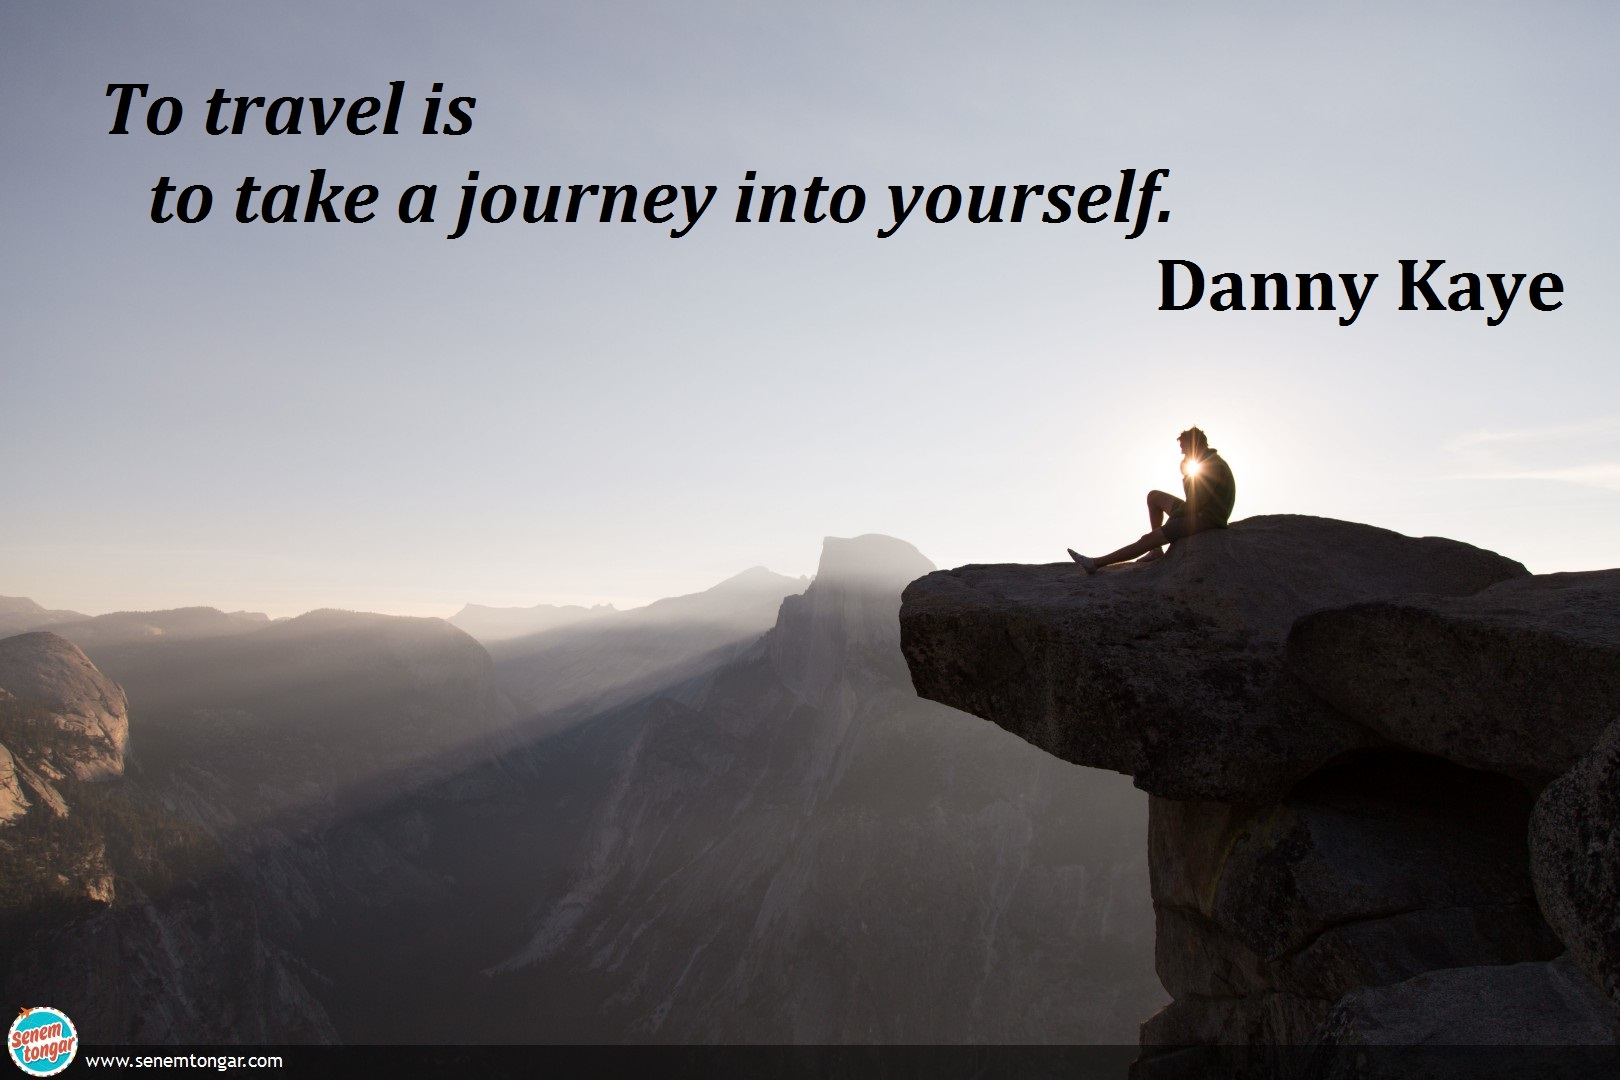 to travel is to take a journey_danny kaye